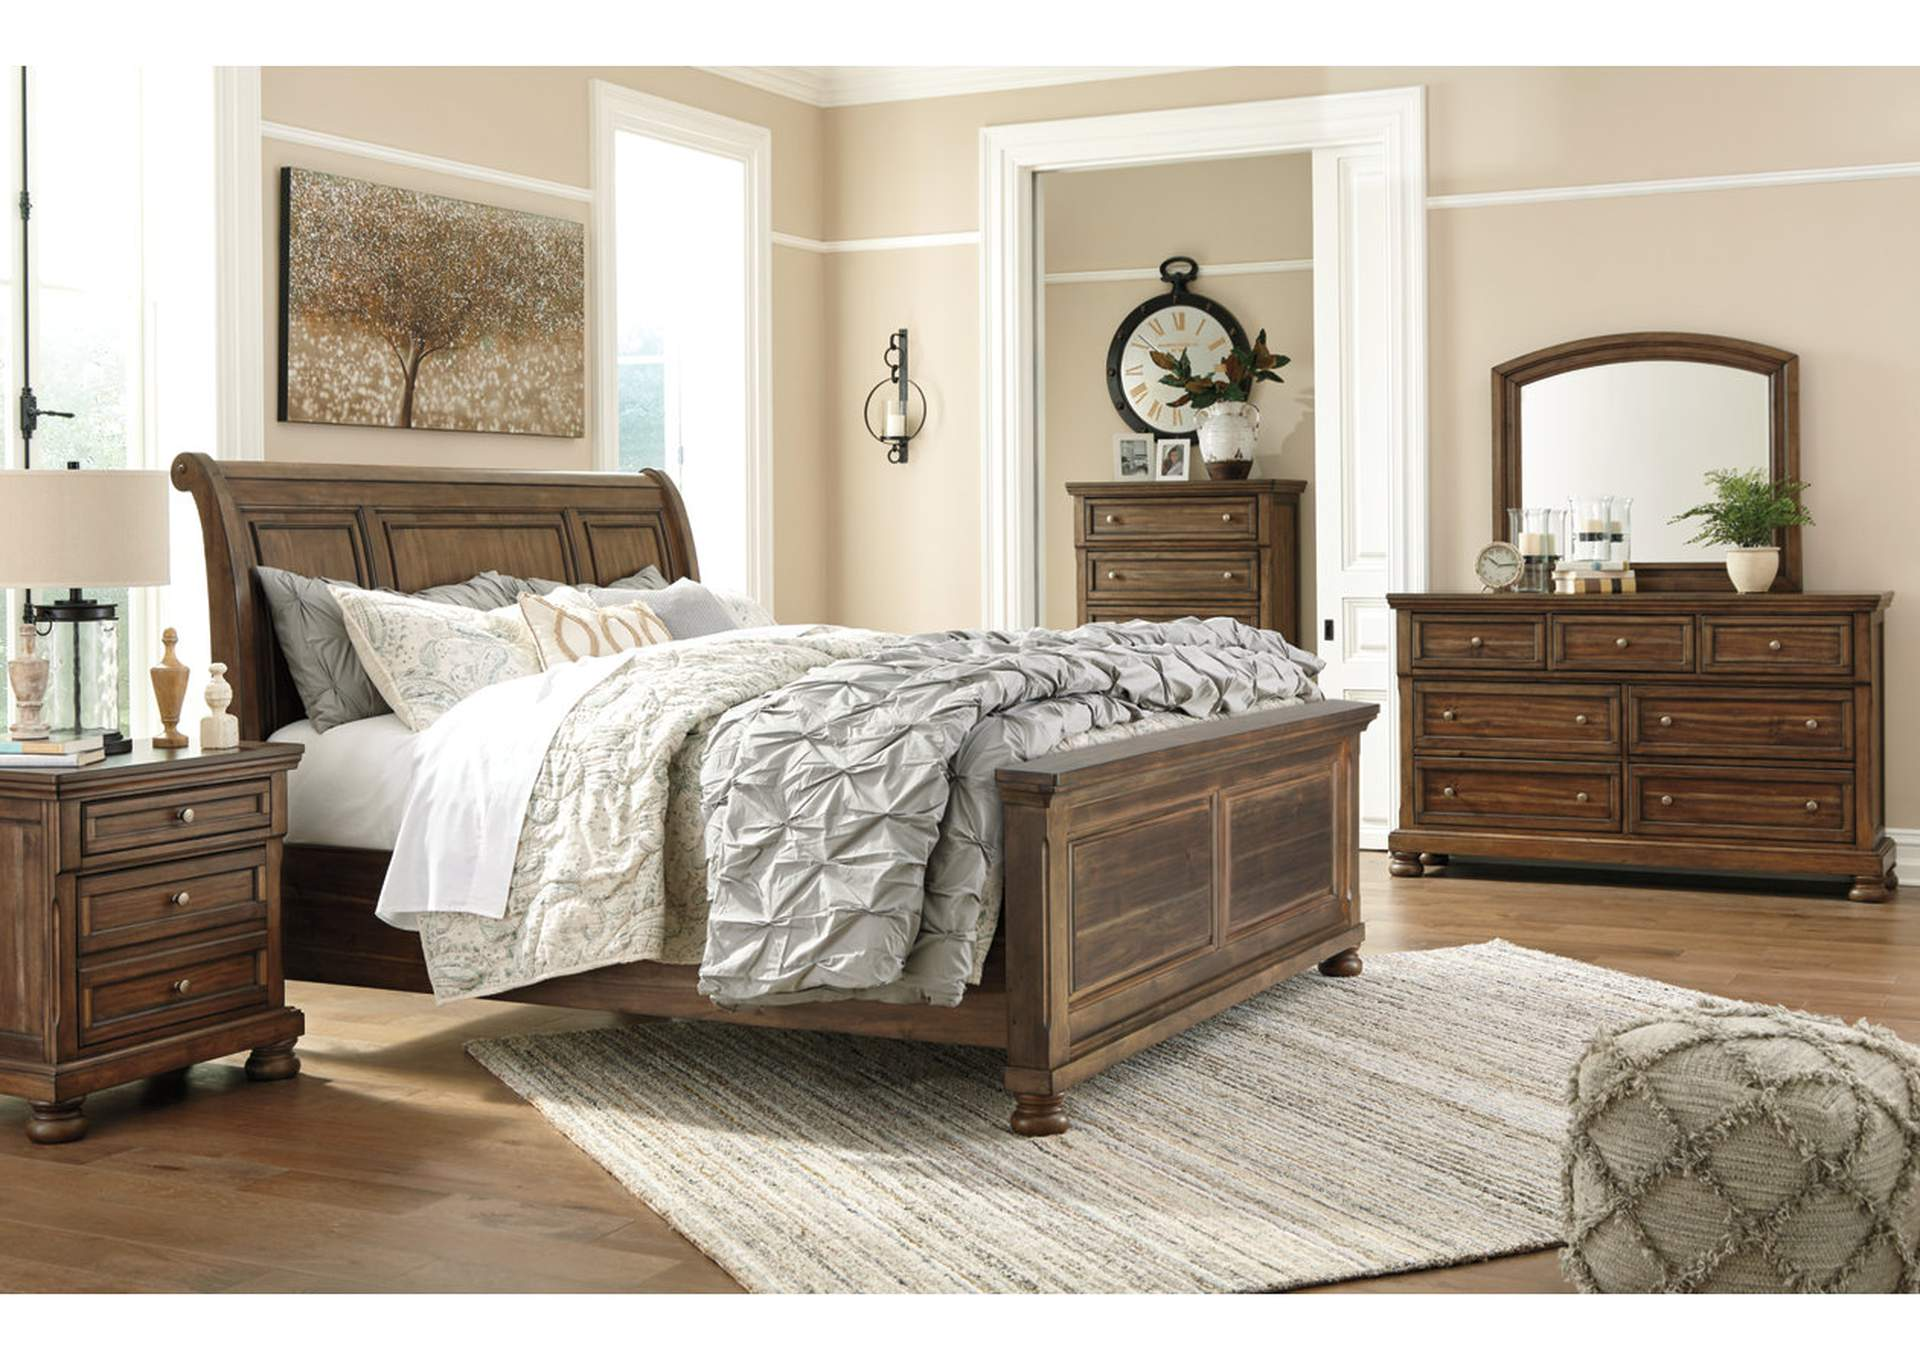 Flynnter Medium Brown Dresser,Signature Design By Ashley